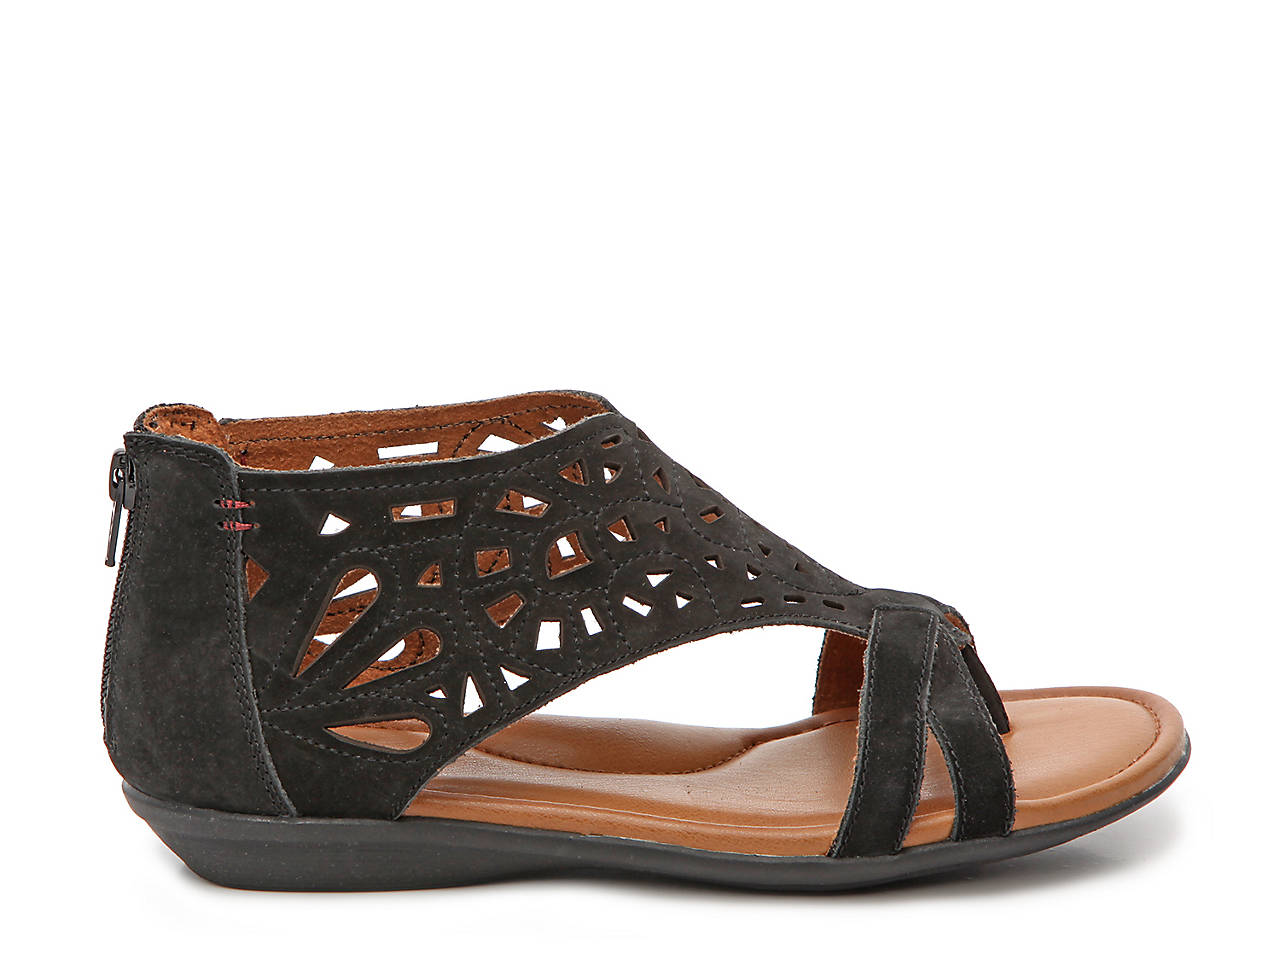 Rockport Cobb Hill Jordan Sandal Women S Shoes Dsw